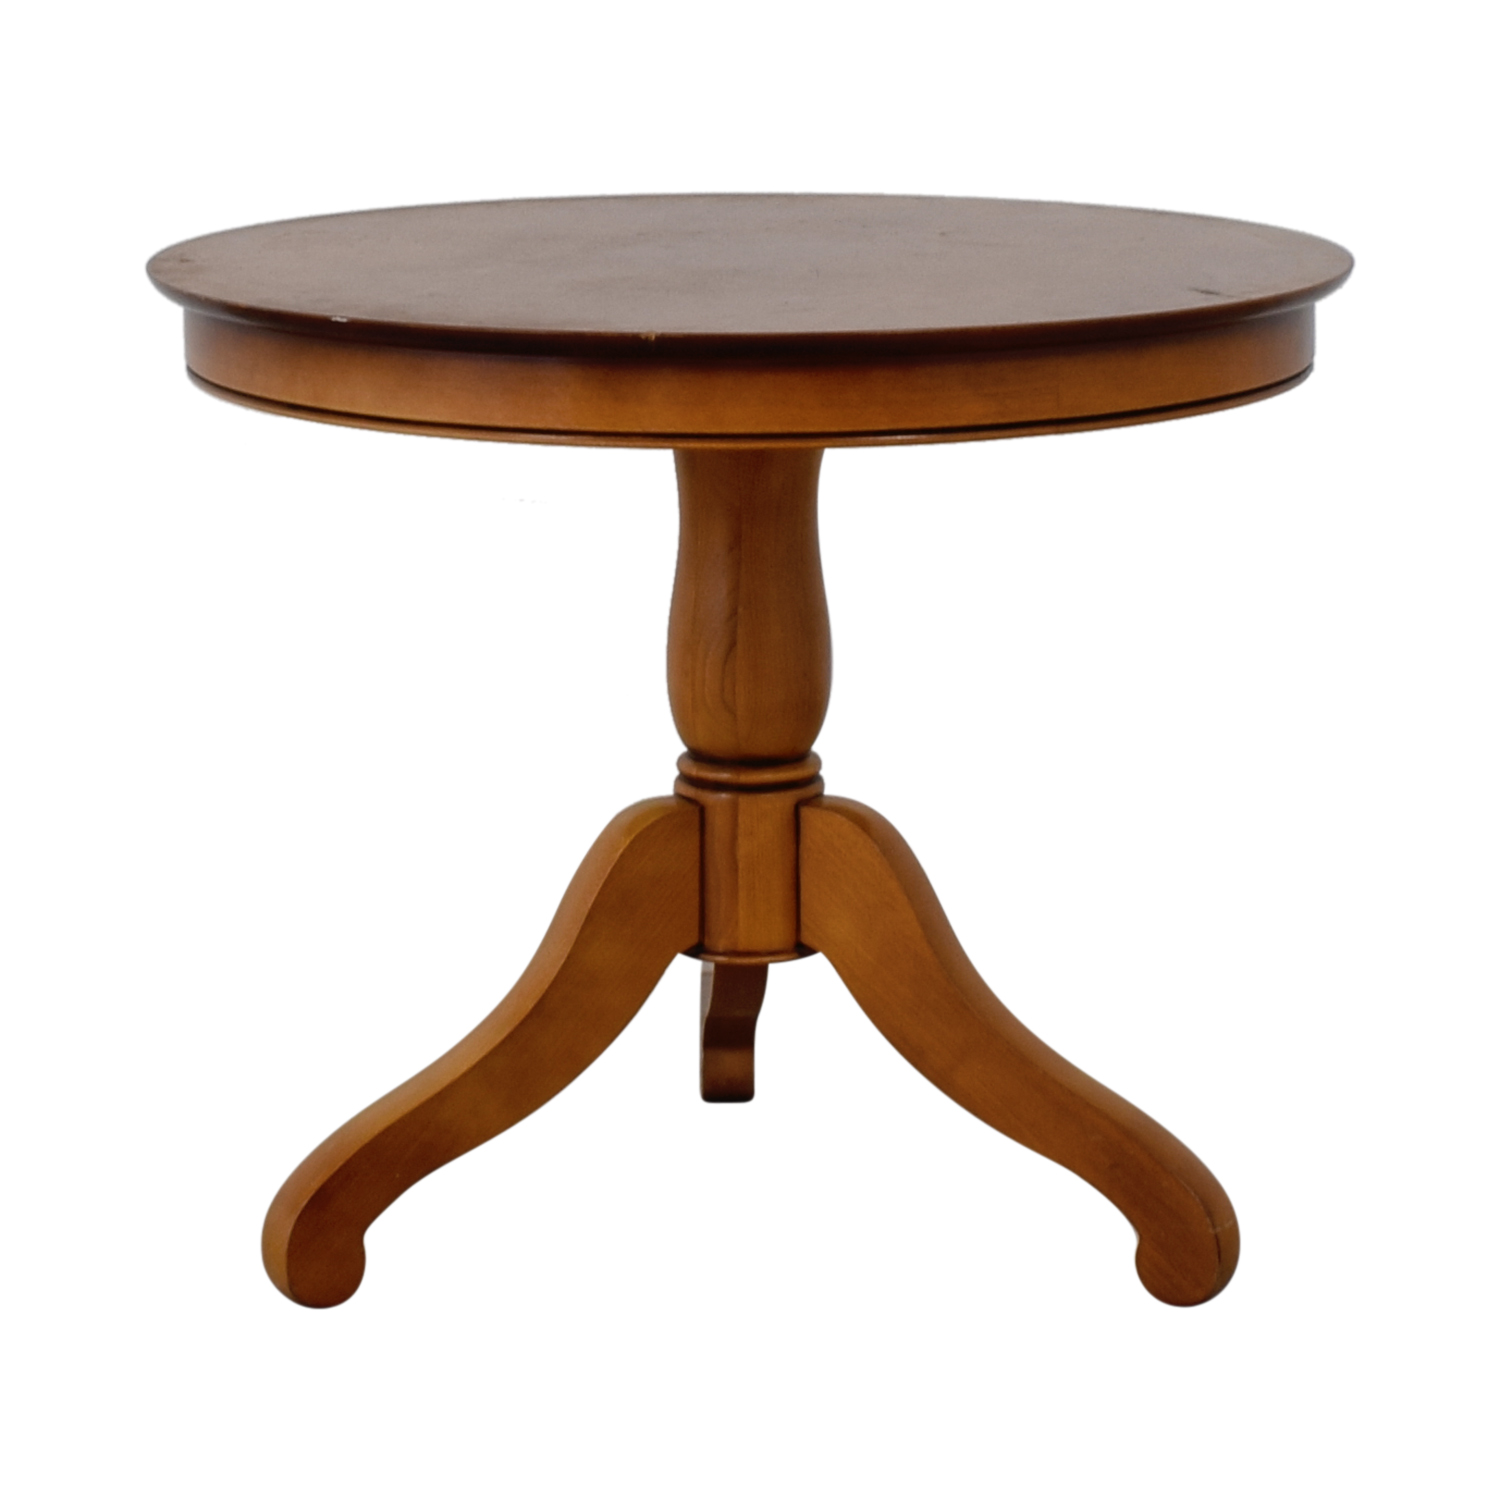 off grange round wood table tables oak accent for tablecloth marble gold coffee antique drop leaf kitchen echo dot side design drawing room black metal and television end covers